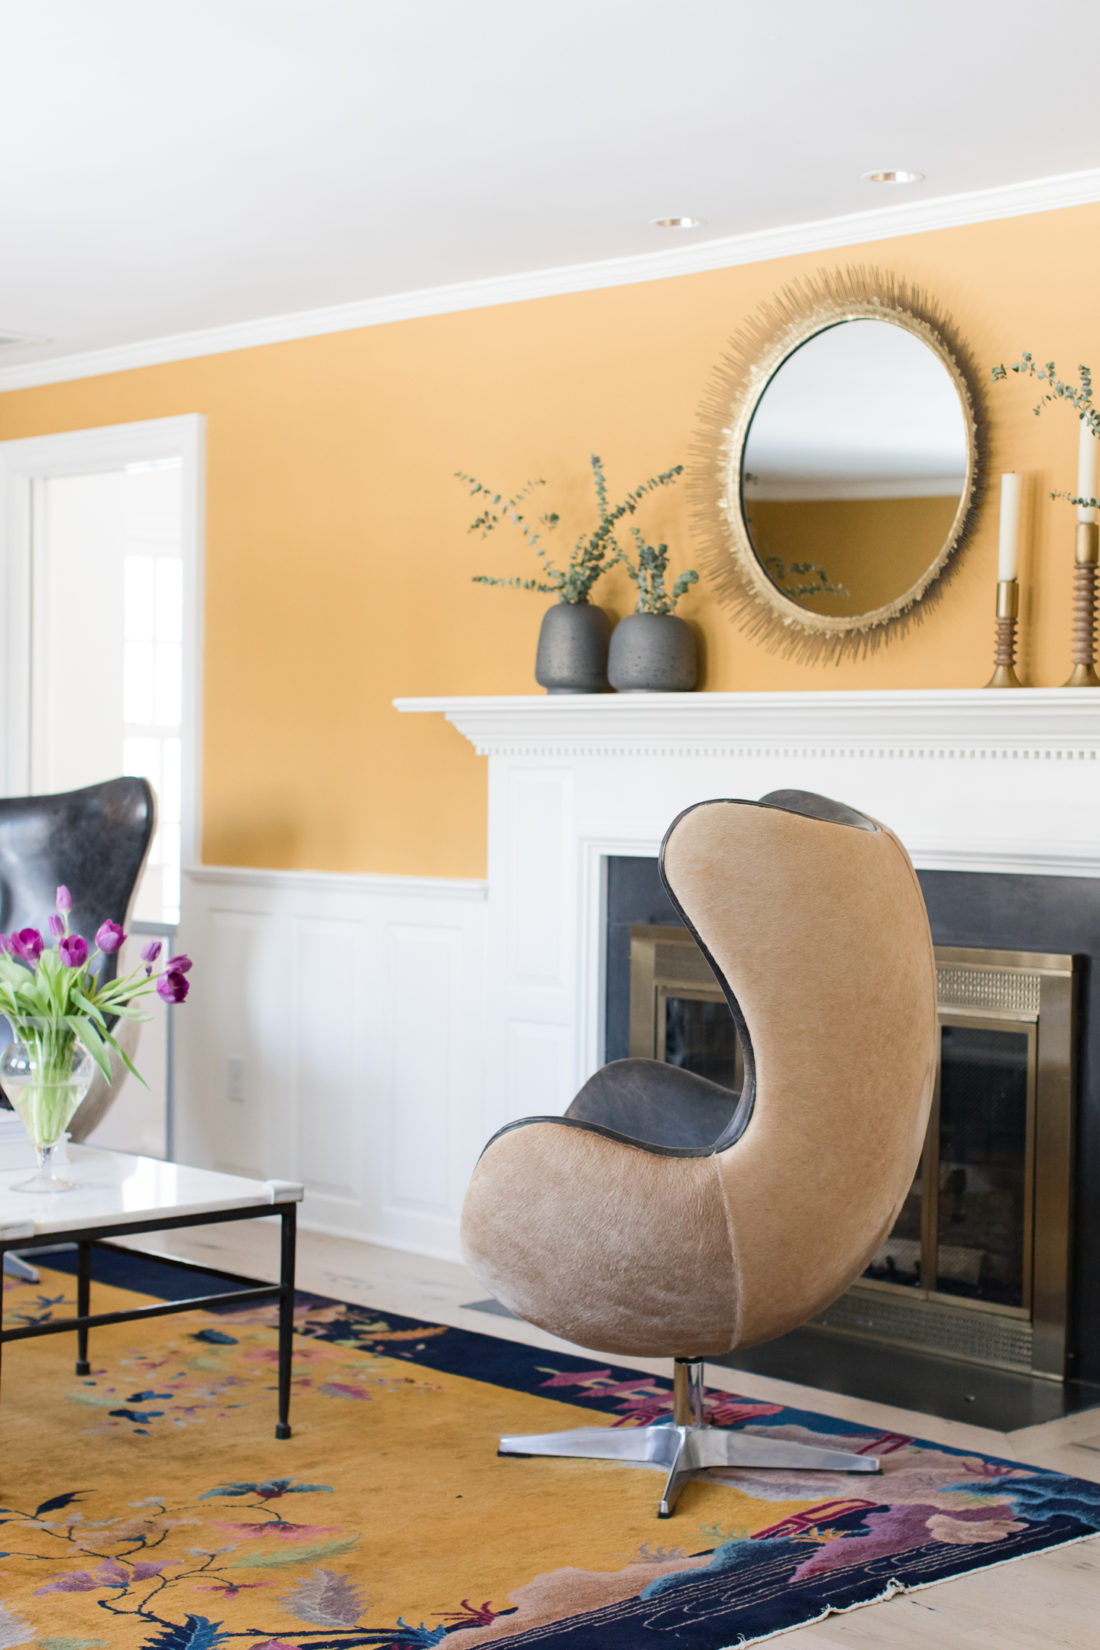 A Tour Of My House: My Formal Living Room Reveal!